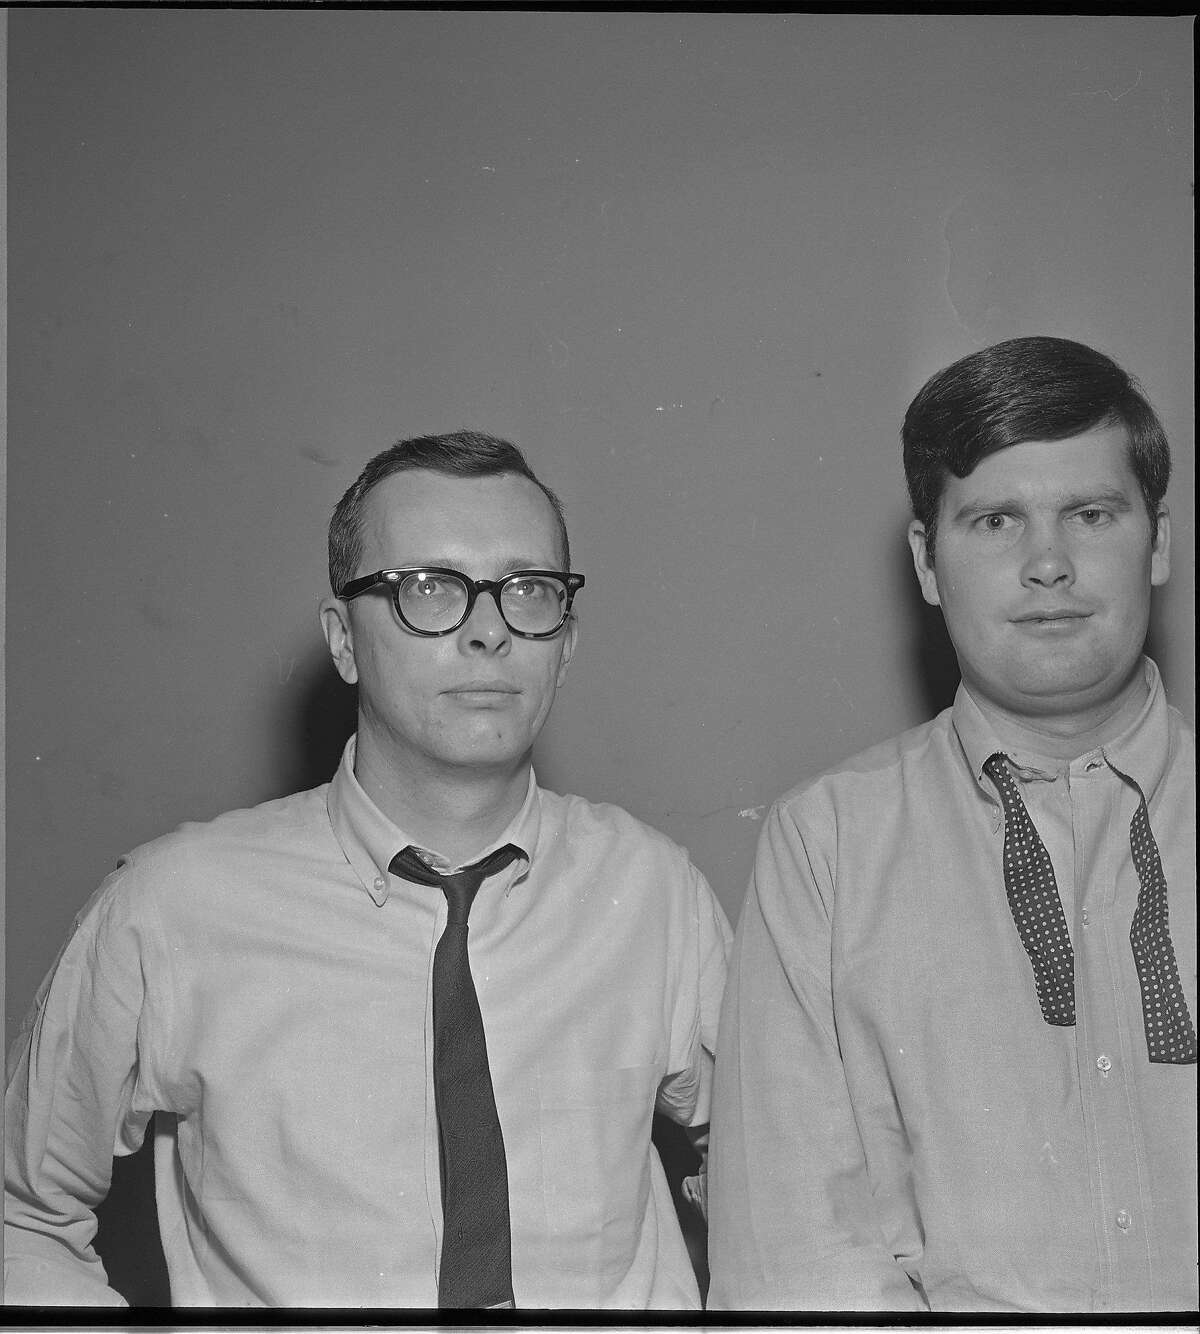 Warren Hinckle, during his first stint writing the the San Francisco Chronicle, person on left unidentified Photo taken April 9, 1963